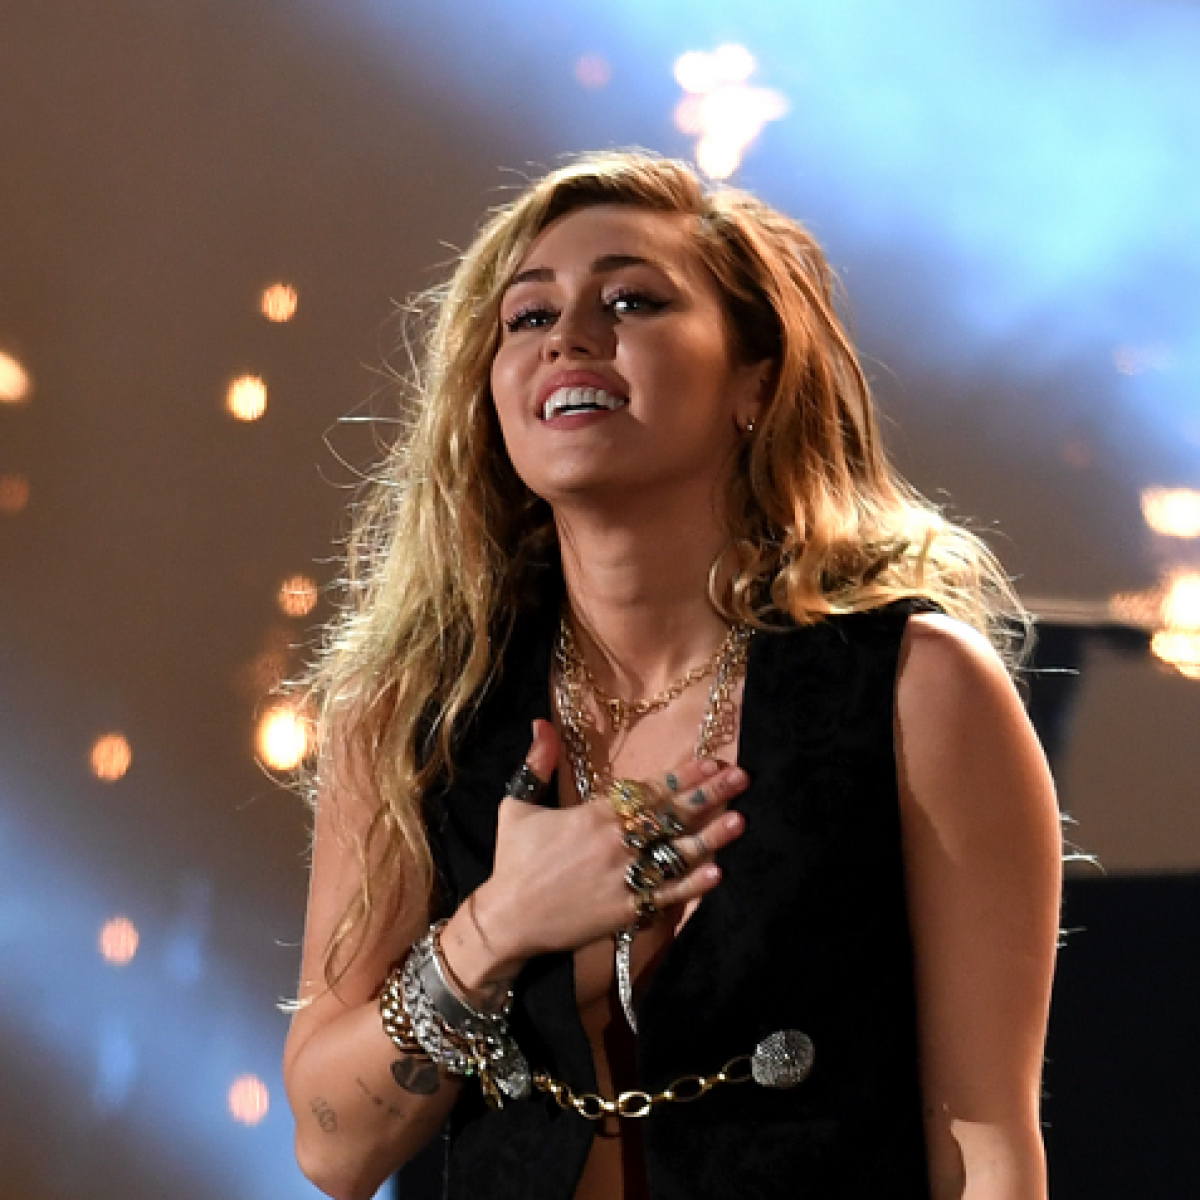 Miley Cyrus' new track 'Midnight Sky' to debut on Aug 14